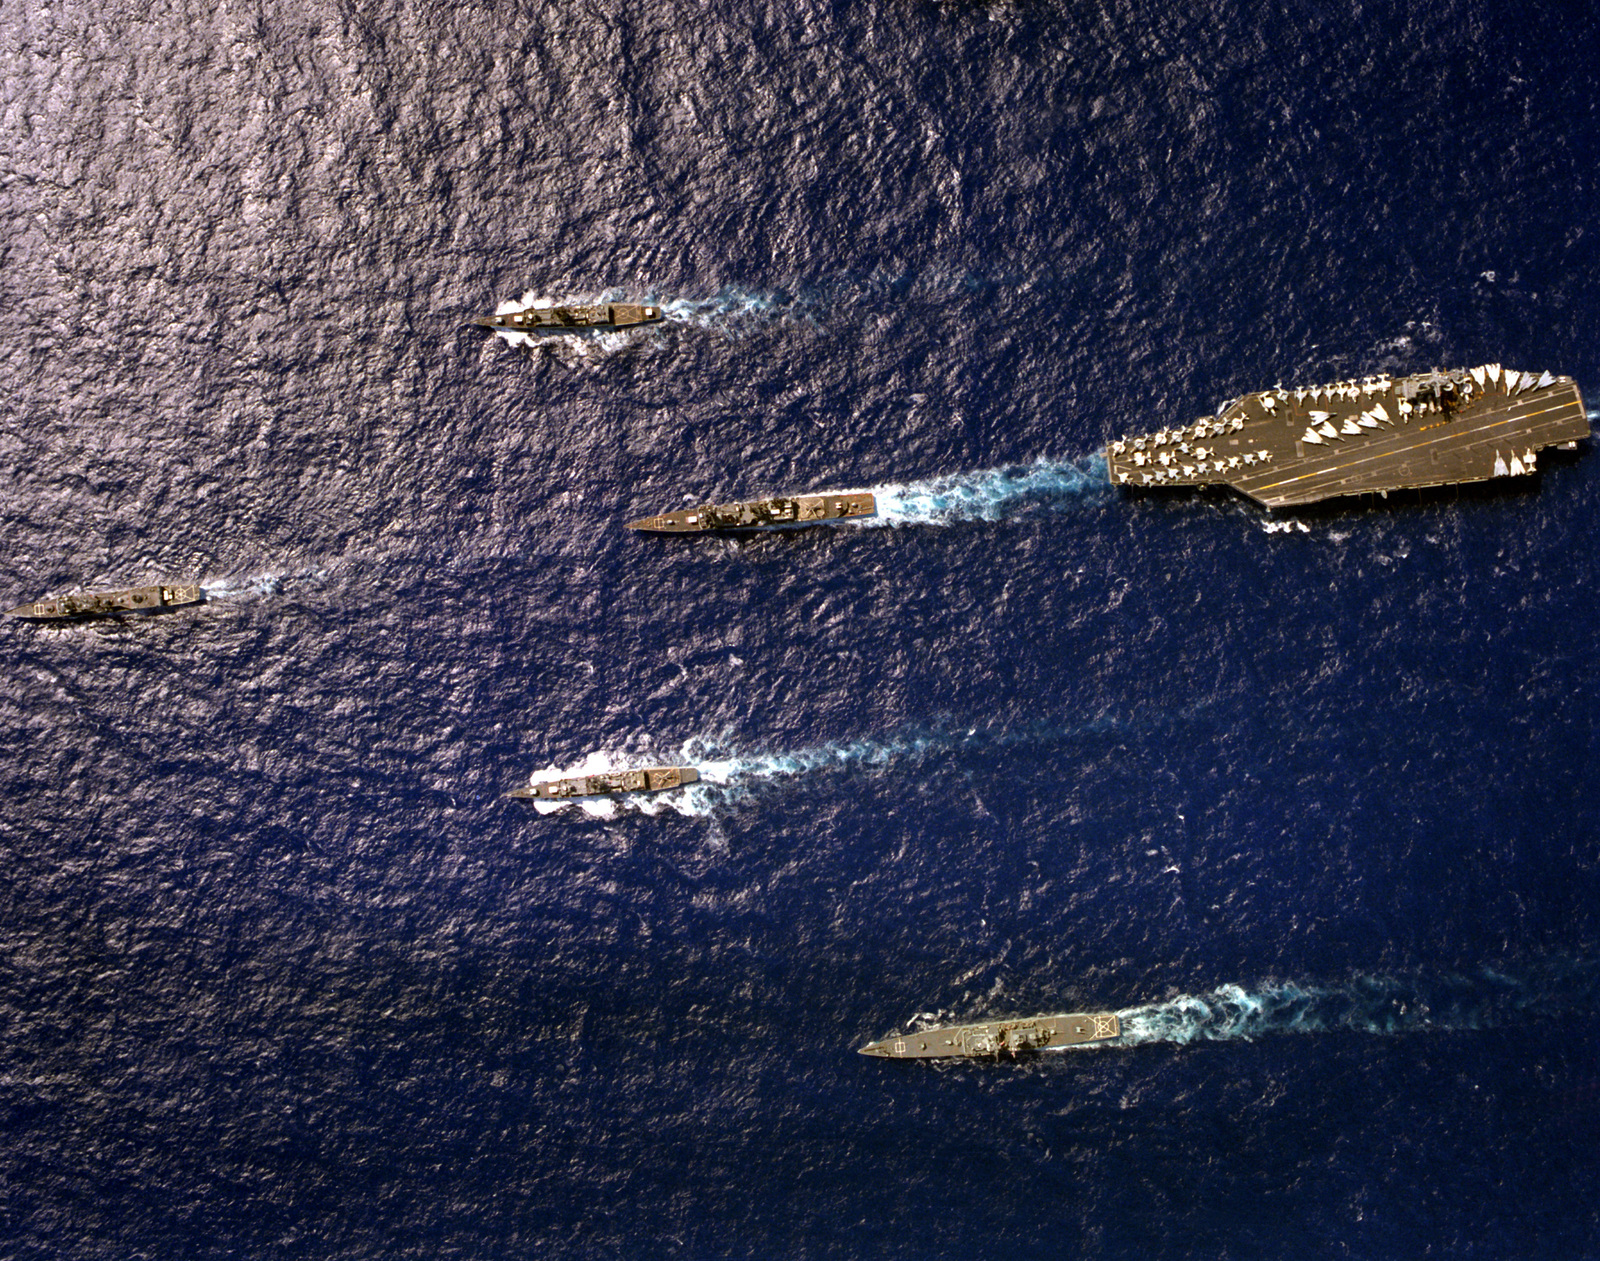 An overhead view of the nuclear-powered aircraft carrier USS CARL VINSON (CVN-70) underway near Hawaii with its battle group. Top to bottom are the frigate USS COOK (FF-1083), the destroyer USS HEWITT (DD-966), the frigate USS BARBEY (FF-1088), the nuclear-powered guided missile cruiser USS TEXAS (CGN-39) and, leading the formation, the guided missile frigate USS SIDES (FFG-14)